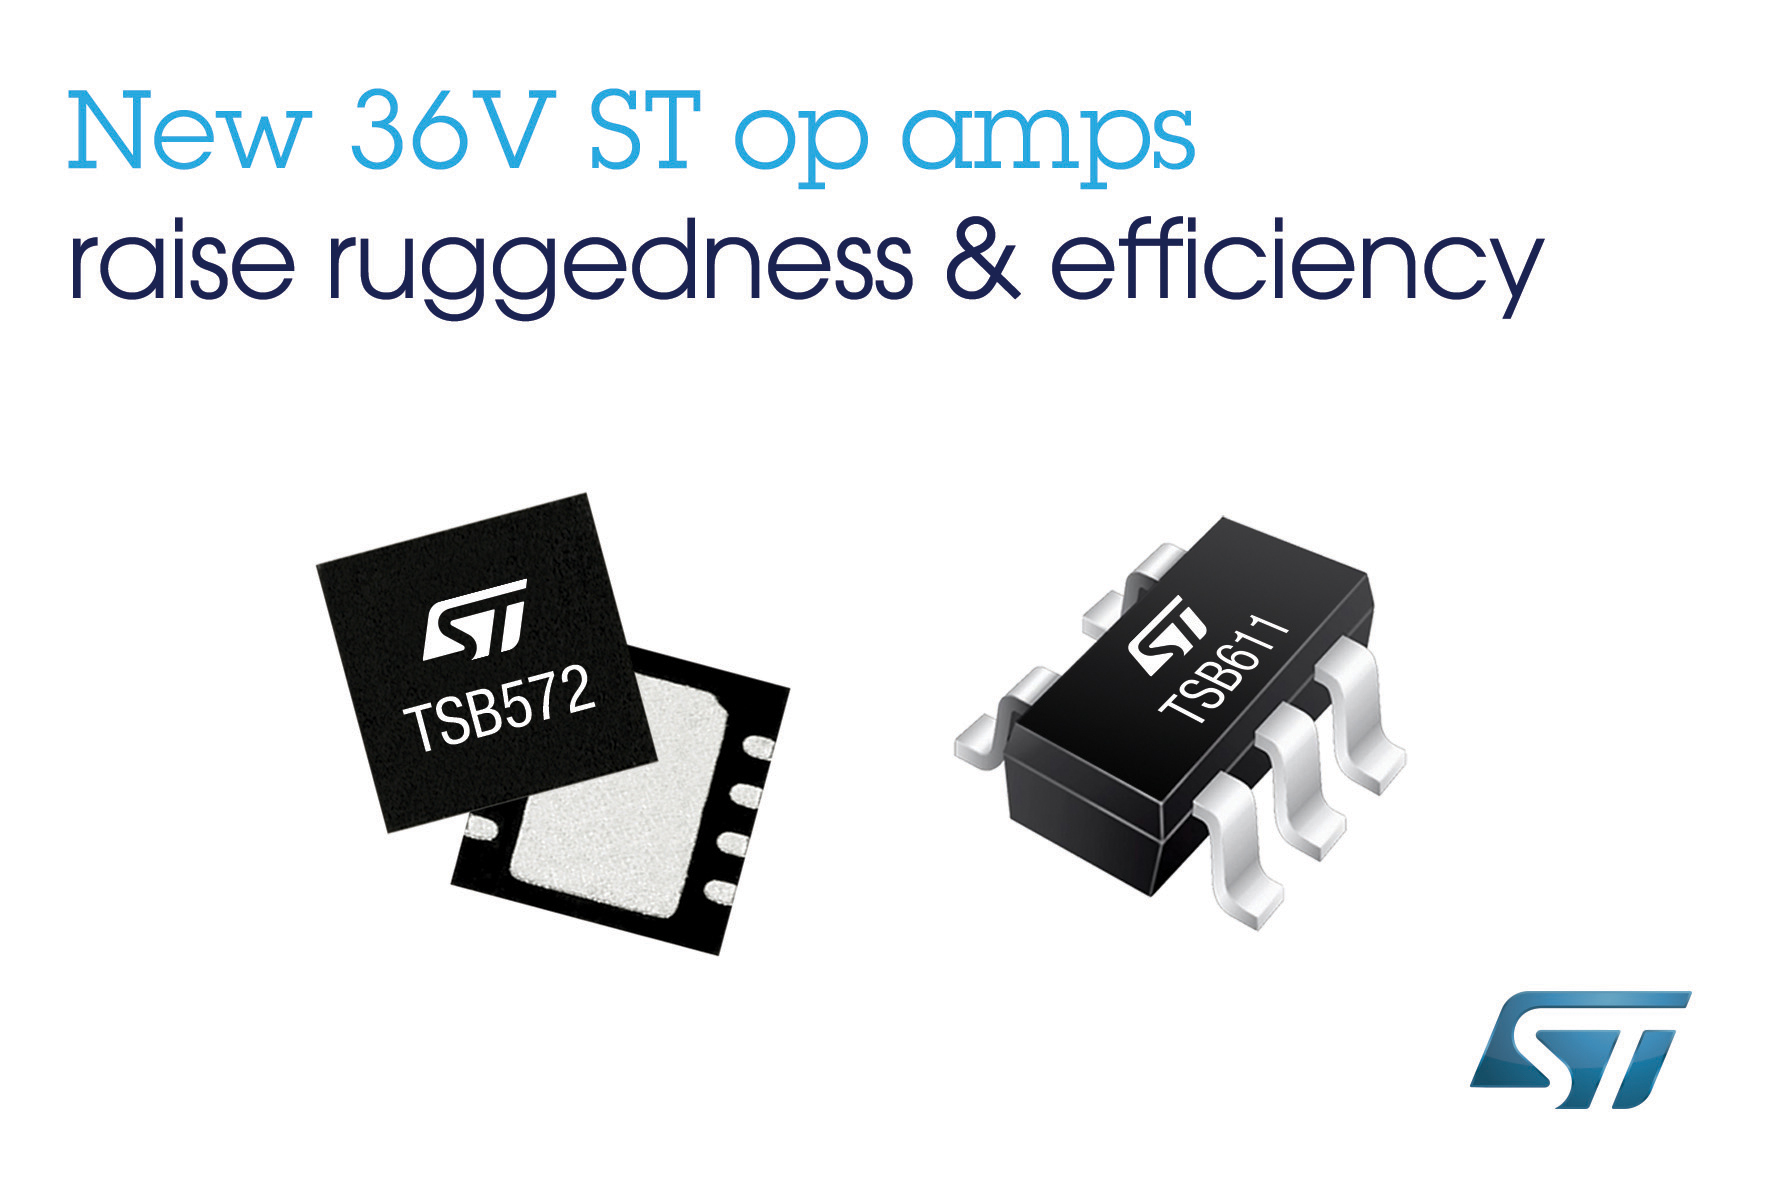 New 36v Op Amps From Stmicroelectronics Raise Ruggedness Stability Amp As Comparator Circuit With This The And Efficiency In Automotive Industrial Applications